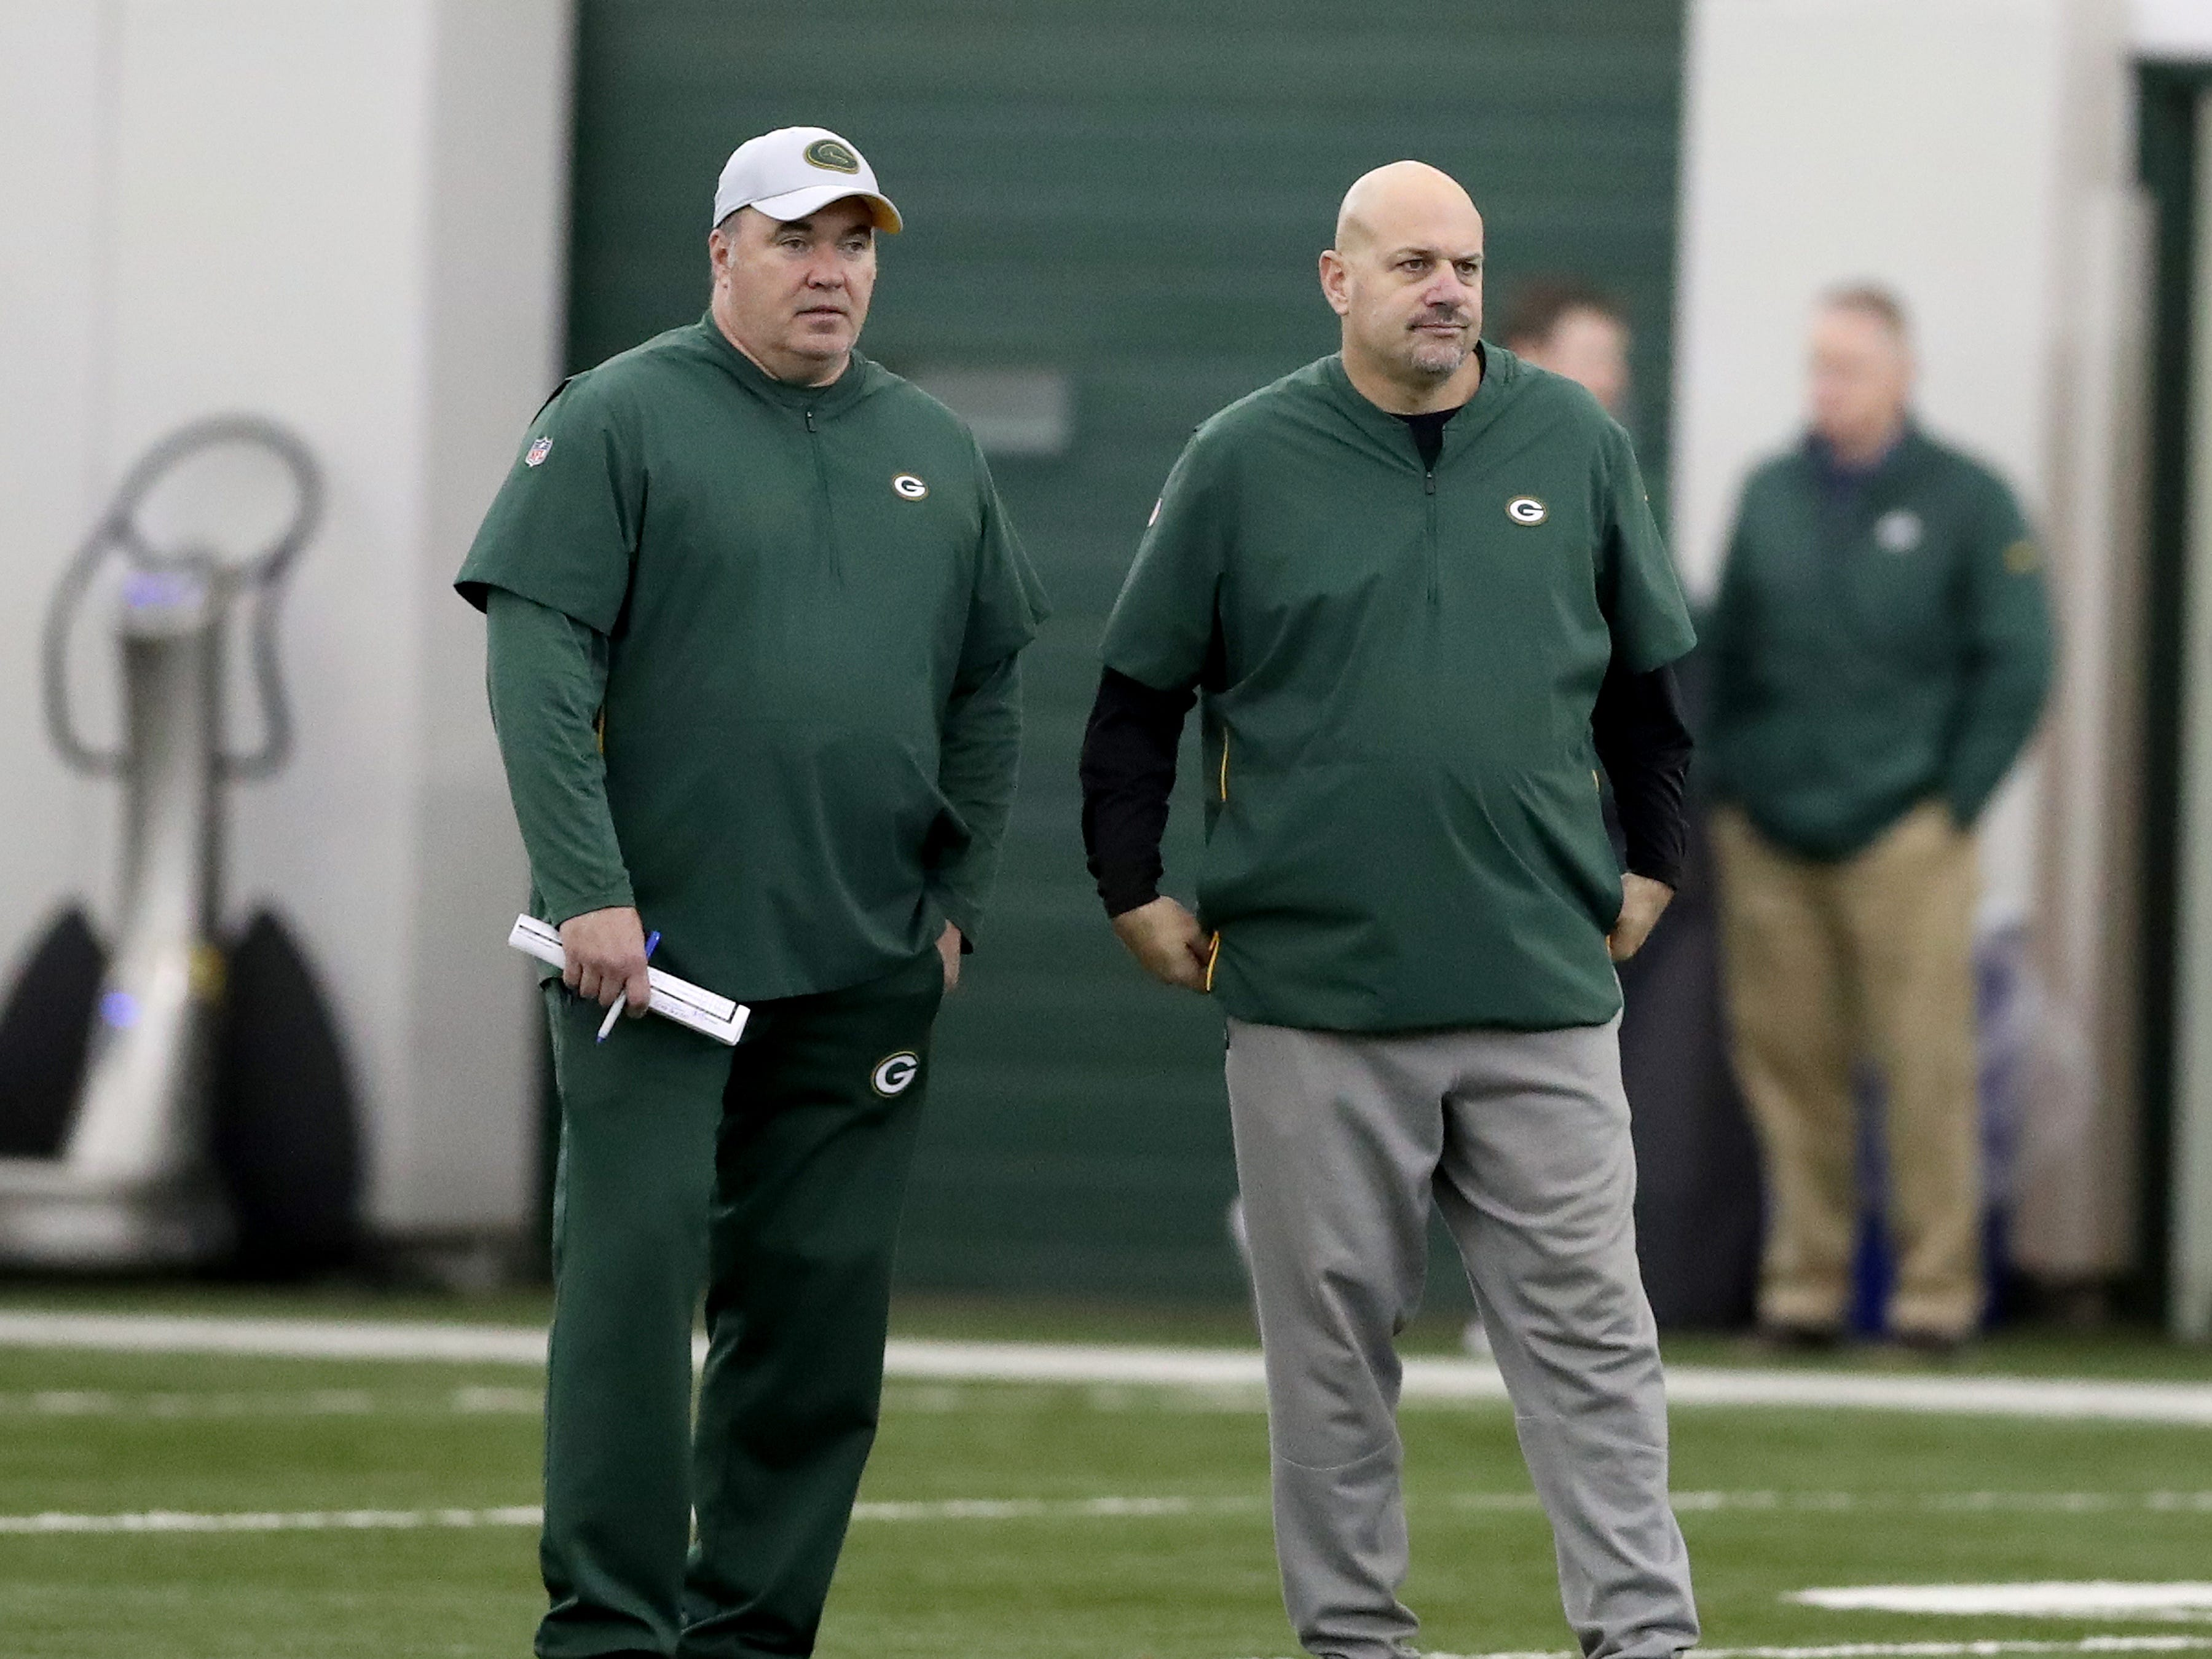 Green Bay Packers head coach Mike McCarthy and defensive coordinator Mike Pettine  during practice inside the Hutson Center Thursday, October 11, 2018 in Ashwaubenon, Wis.